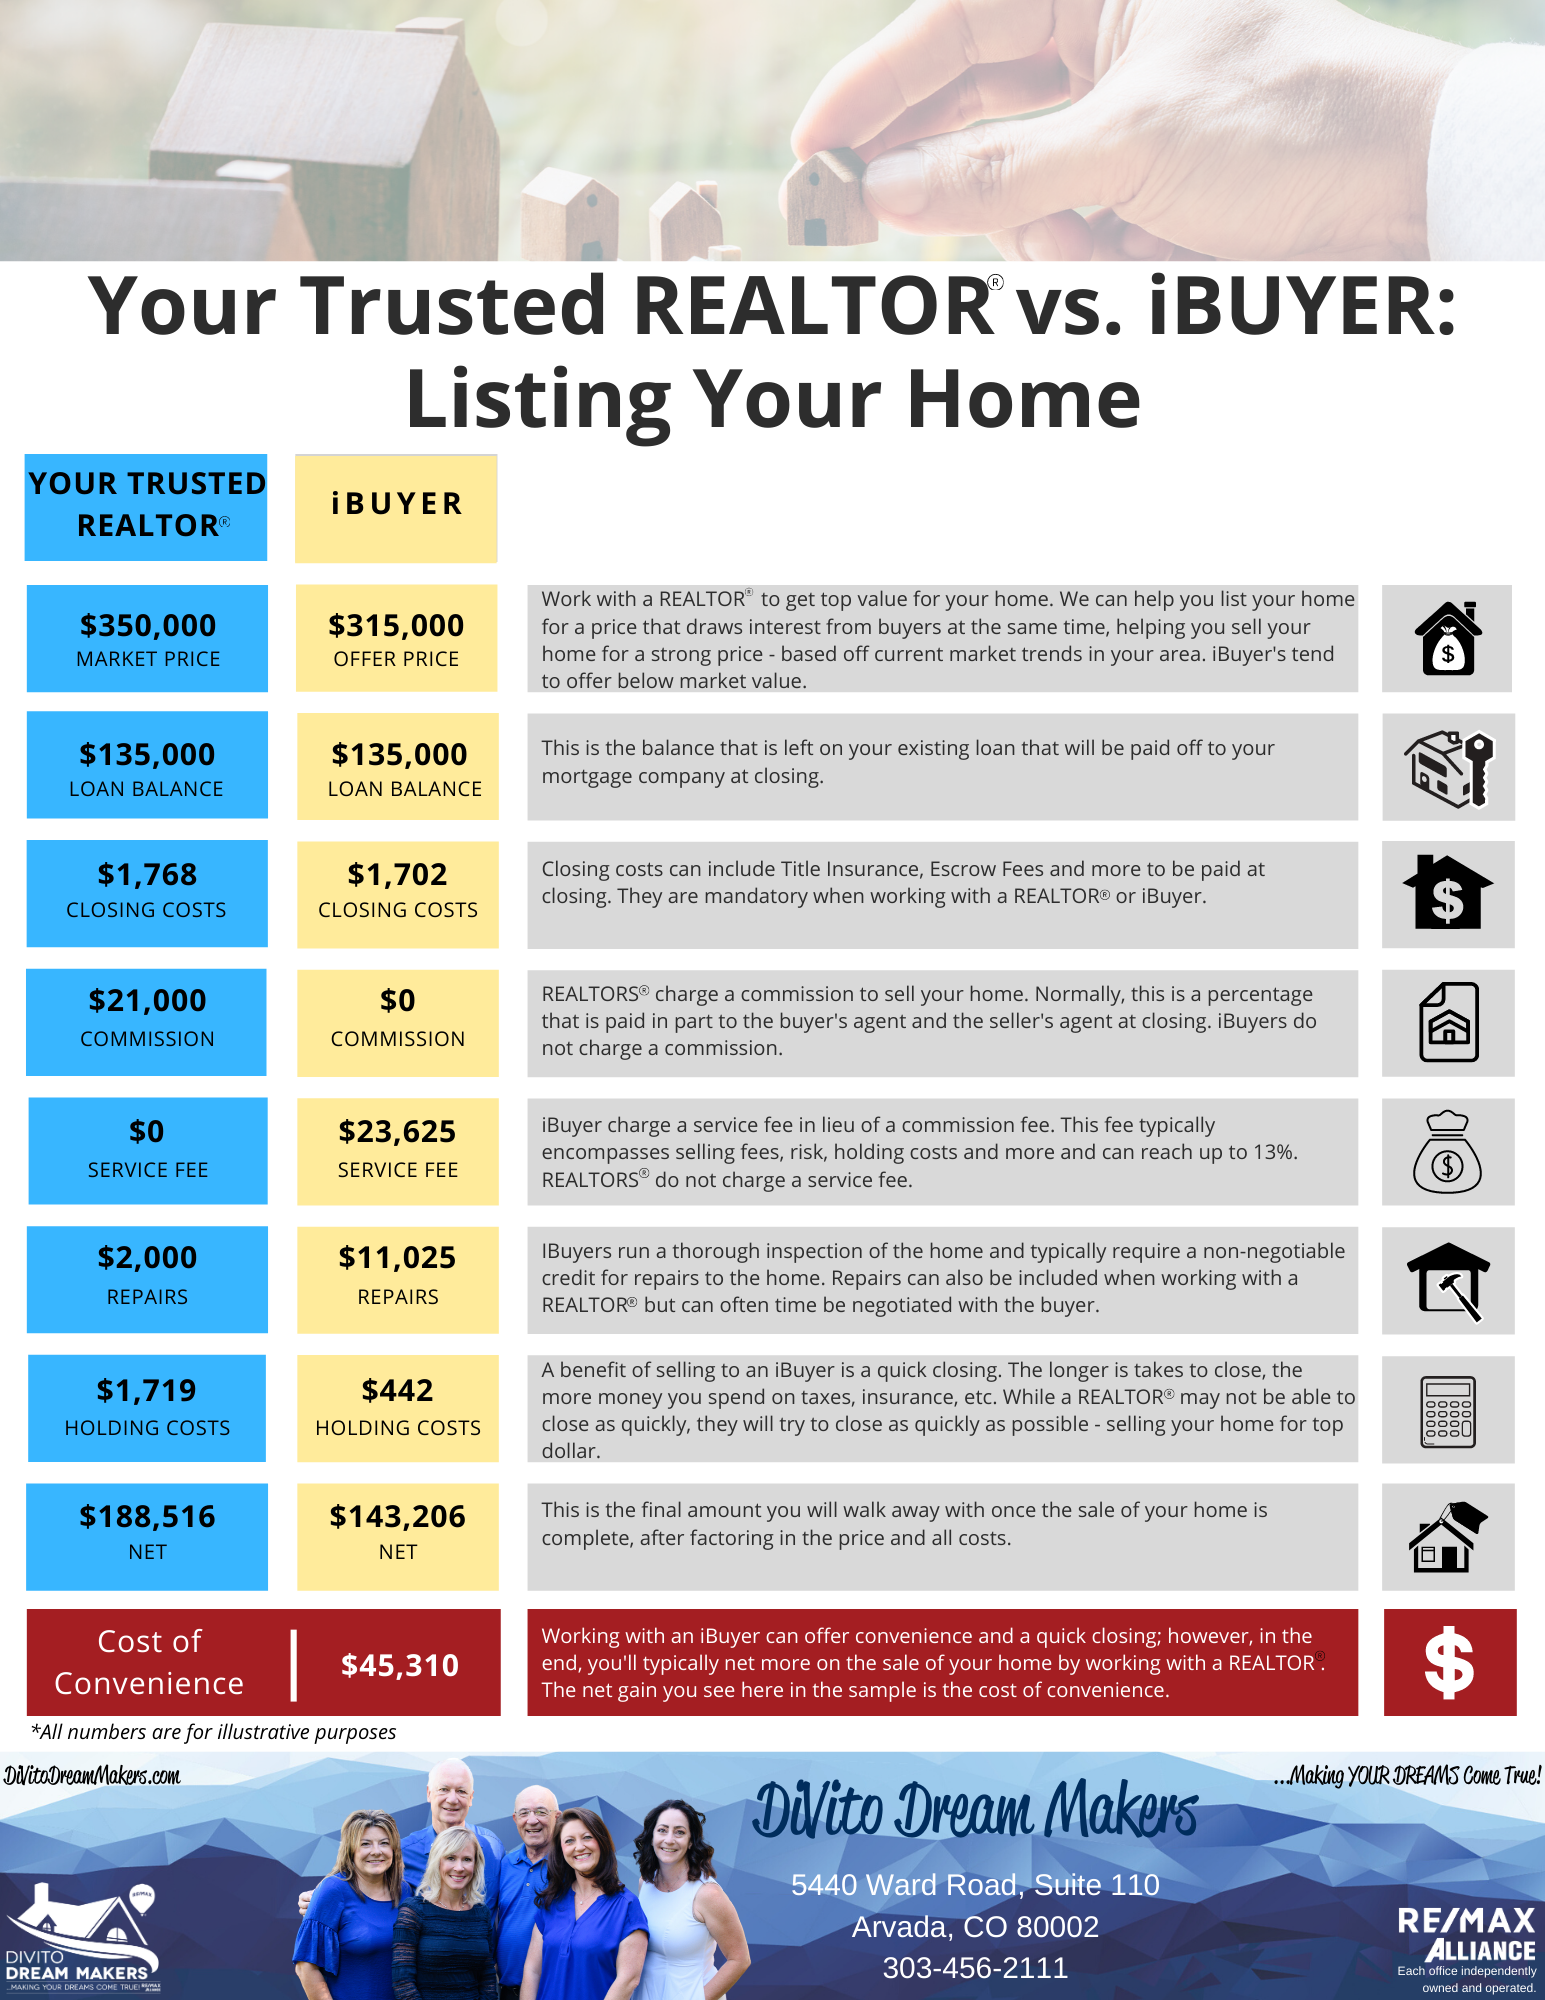 cost of convenience, realtor, ibuyer, listing your home, listing, homeowner, seller, selling, real estate, residential real estate, arvada, denver, colorado, remax, remax agent, real estate team, top producer, remax alliance, divito dream makers, denver dream making, making dreams come true, full service agent, quality, trusted